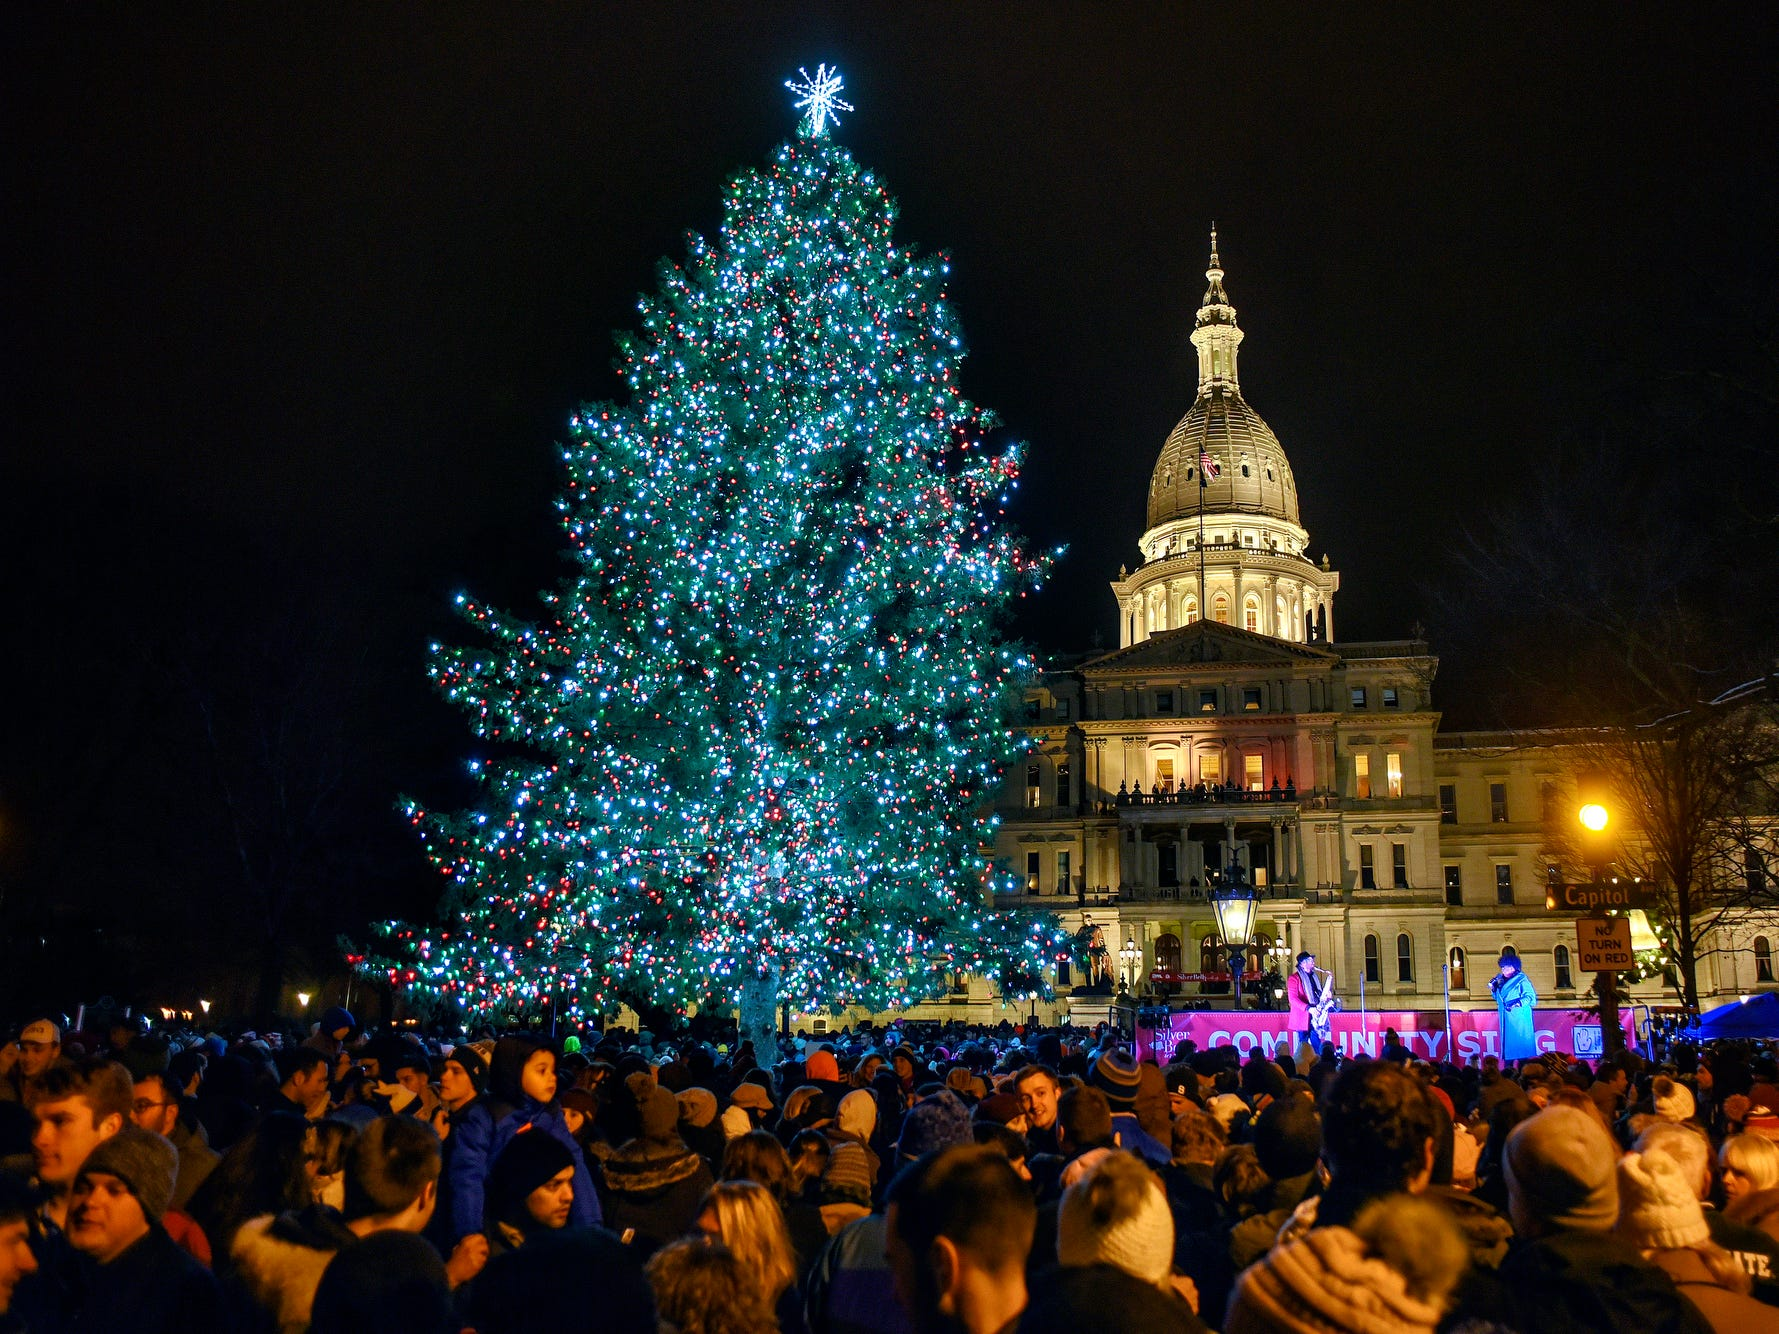 The official state Christmas tree shines in front of the Michigan State Capitol after a lighting ceremony during Silver Bells in the City on Friday, Nov. 16, 2018, in downtown Lansing.